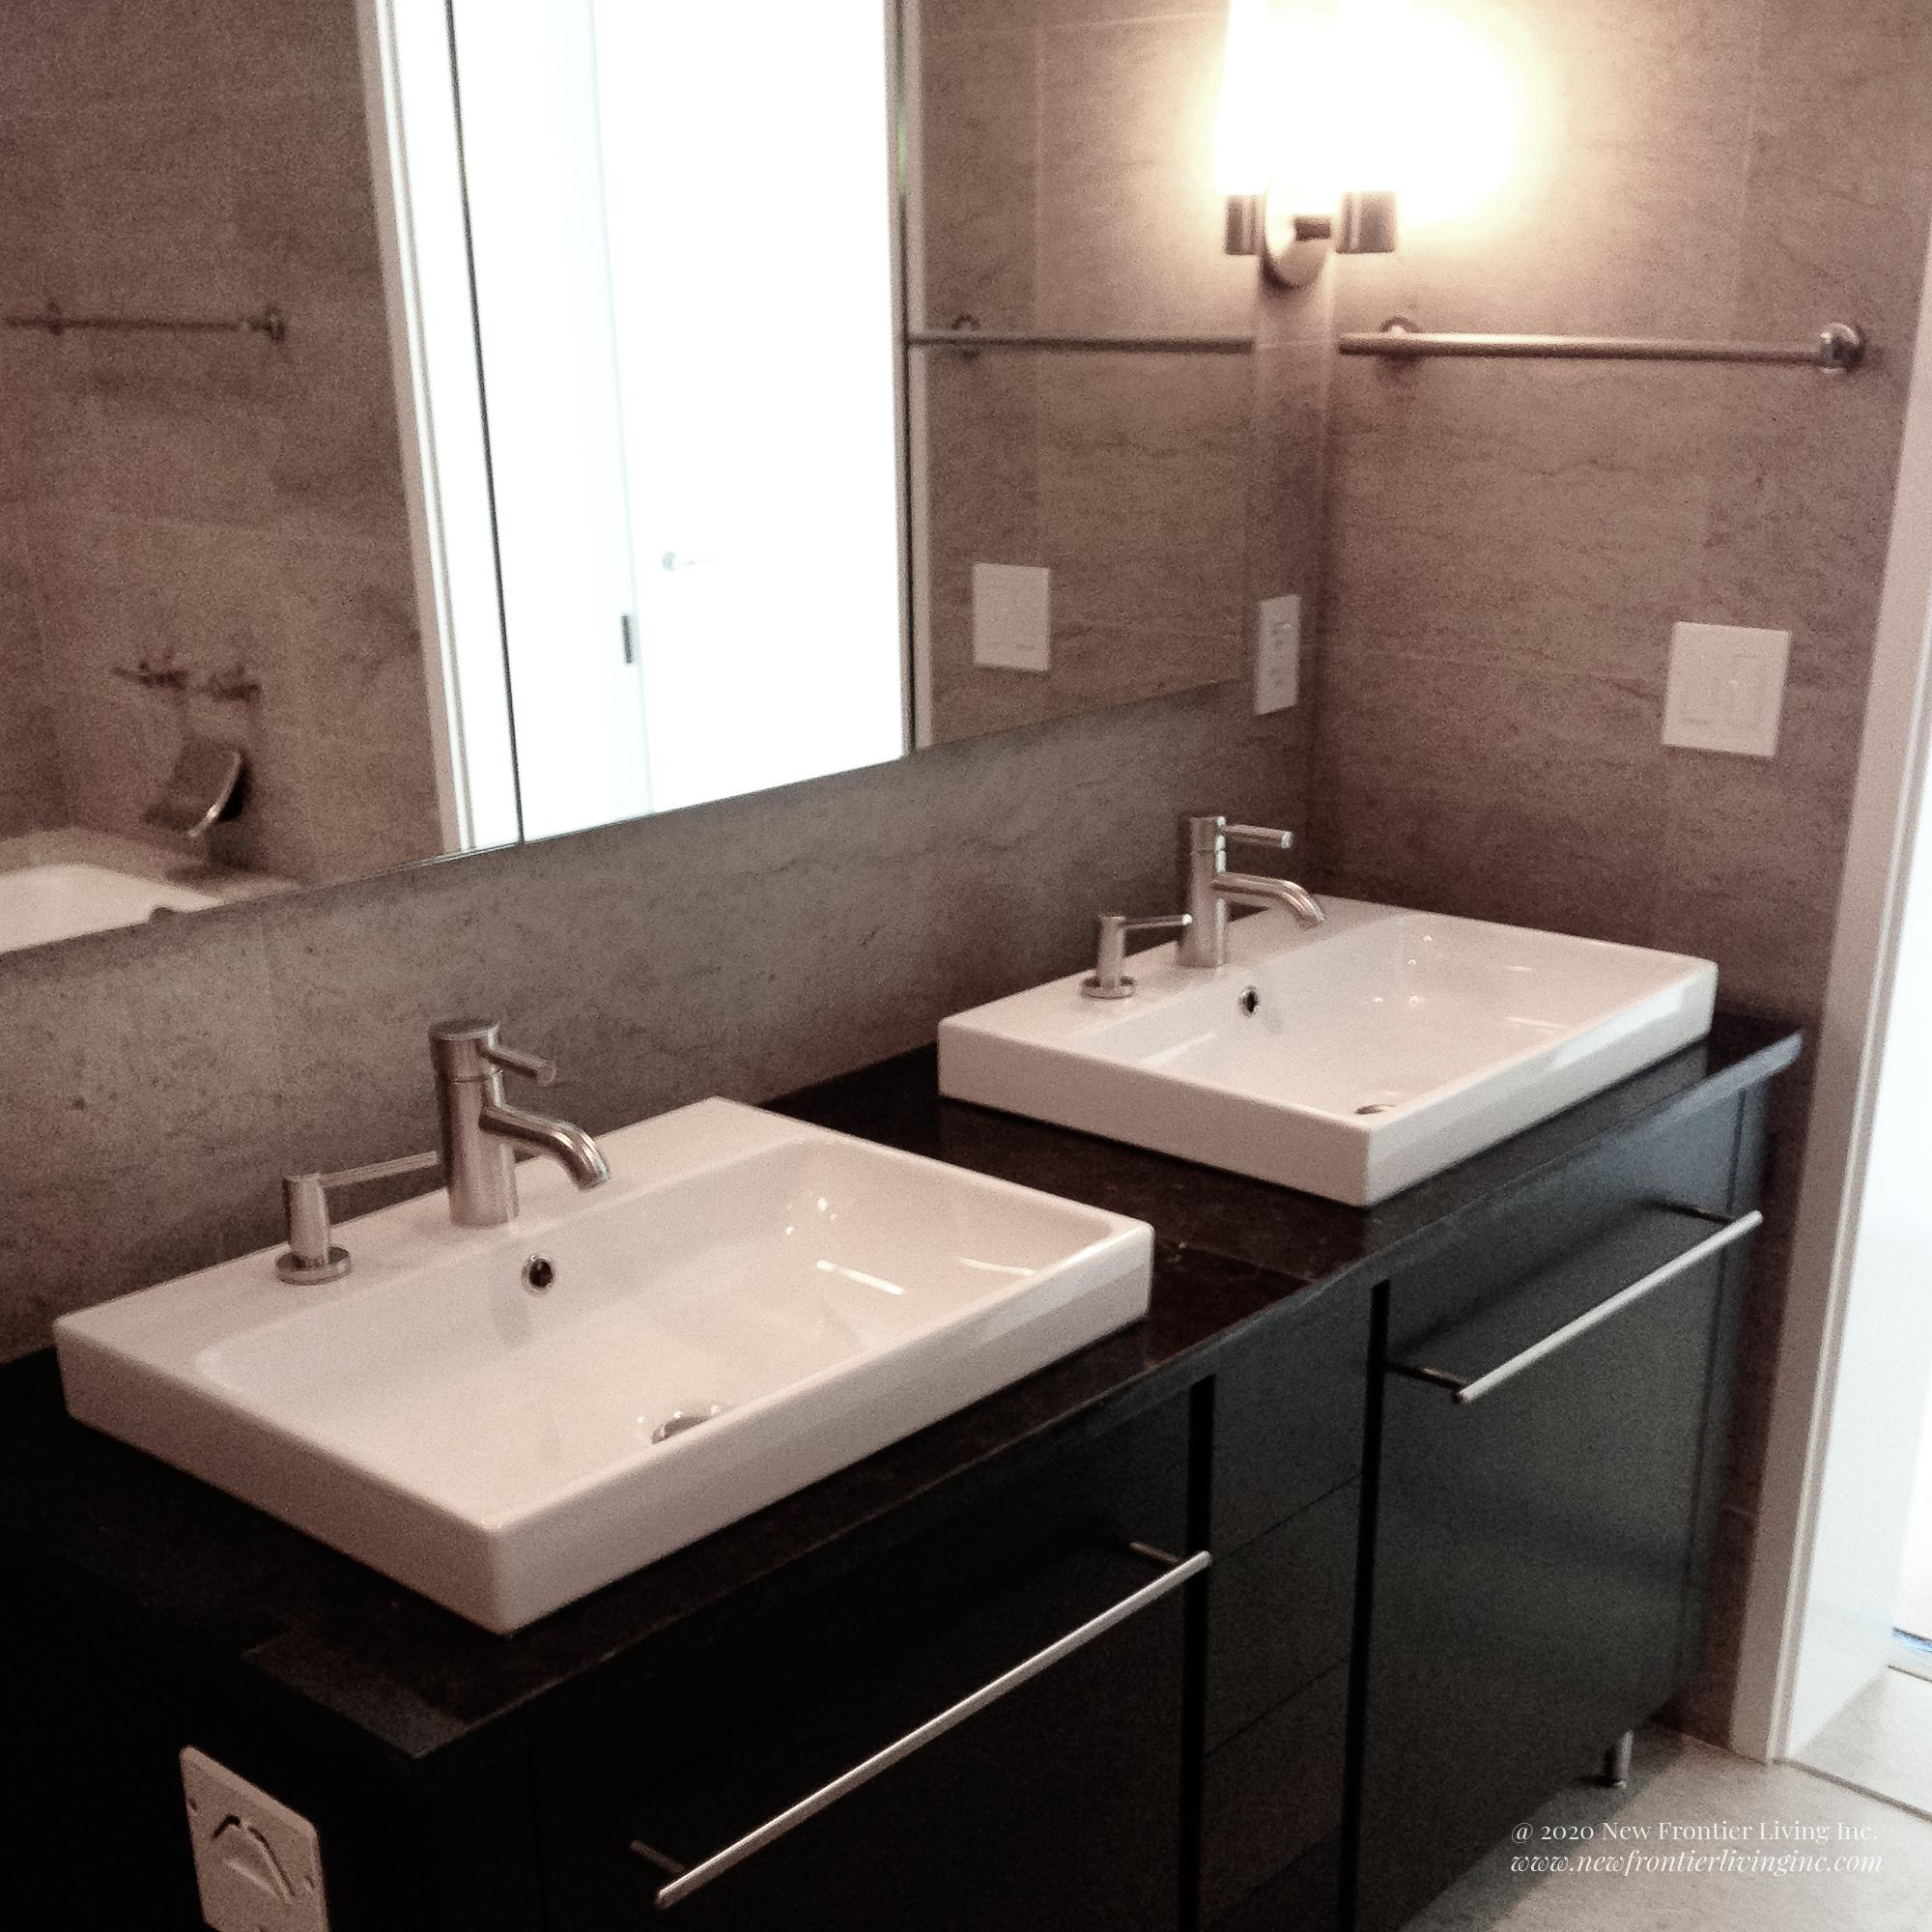 Cream brown bathroom installed by NFL Inc. with two sinks and vanities and a mirror